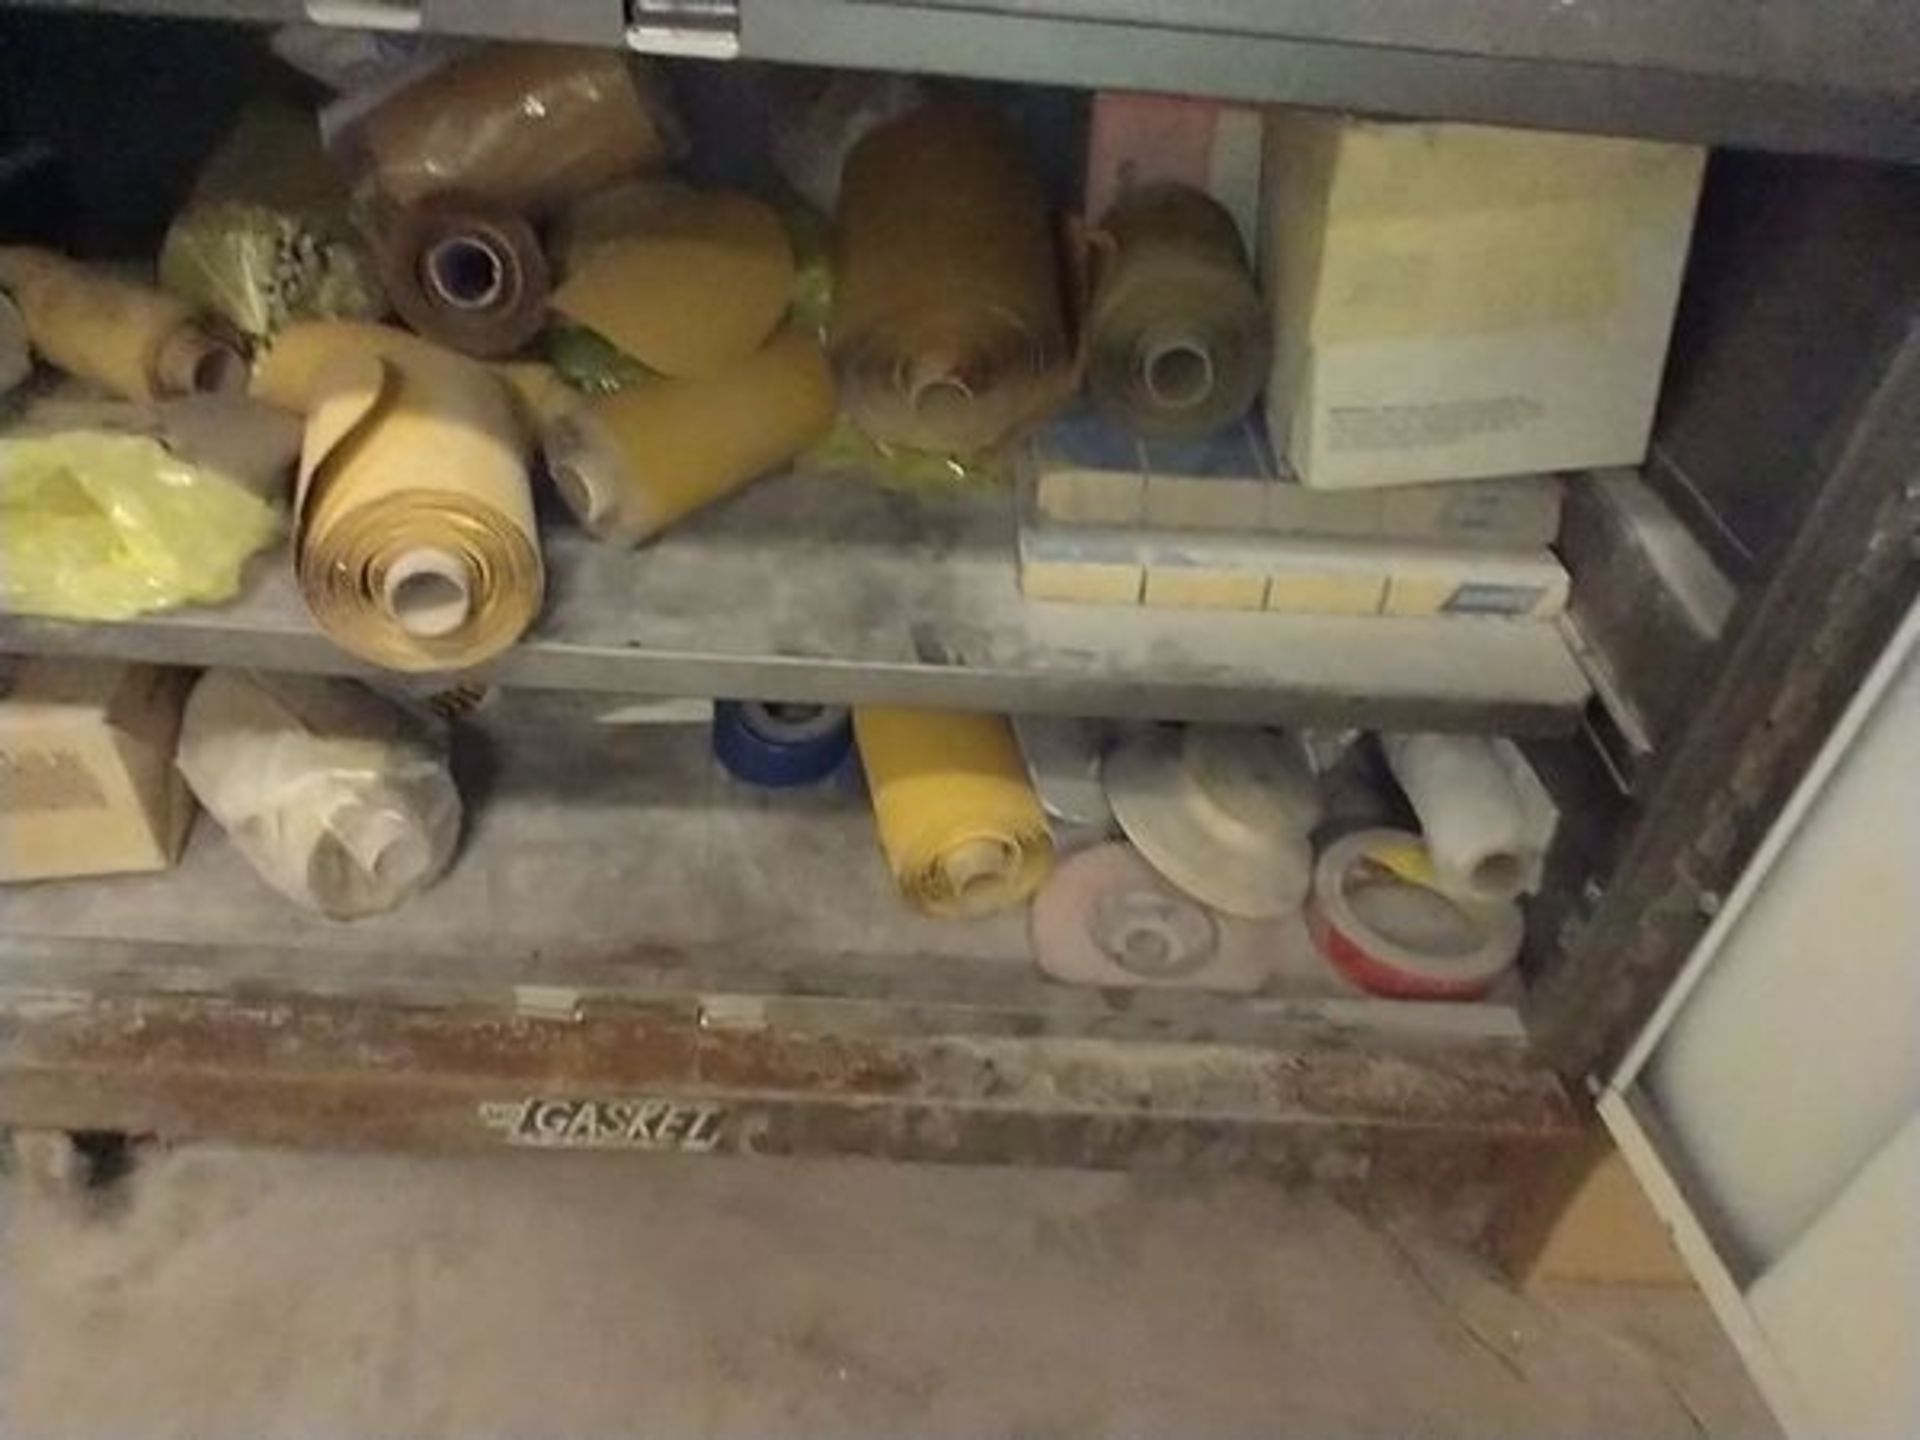 LOT OF ABRASIVE SHEETS, DISCS AND SANDING BLOCKS ON AND INSIDE CABINET (CABINET SOLD SEPARATELY) - Image 6 of 7